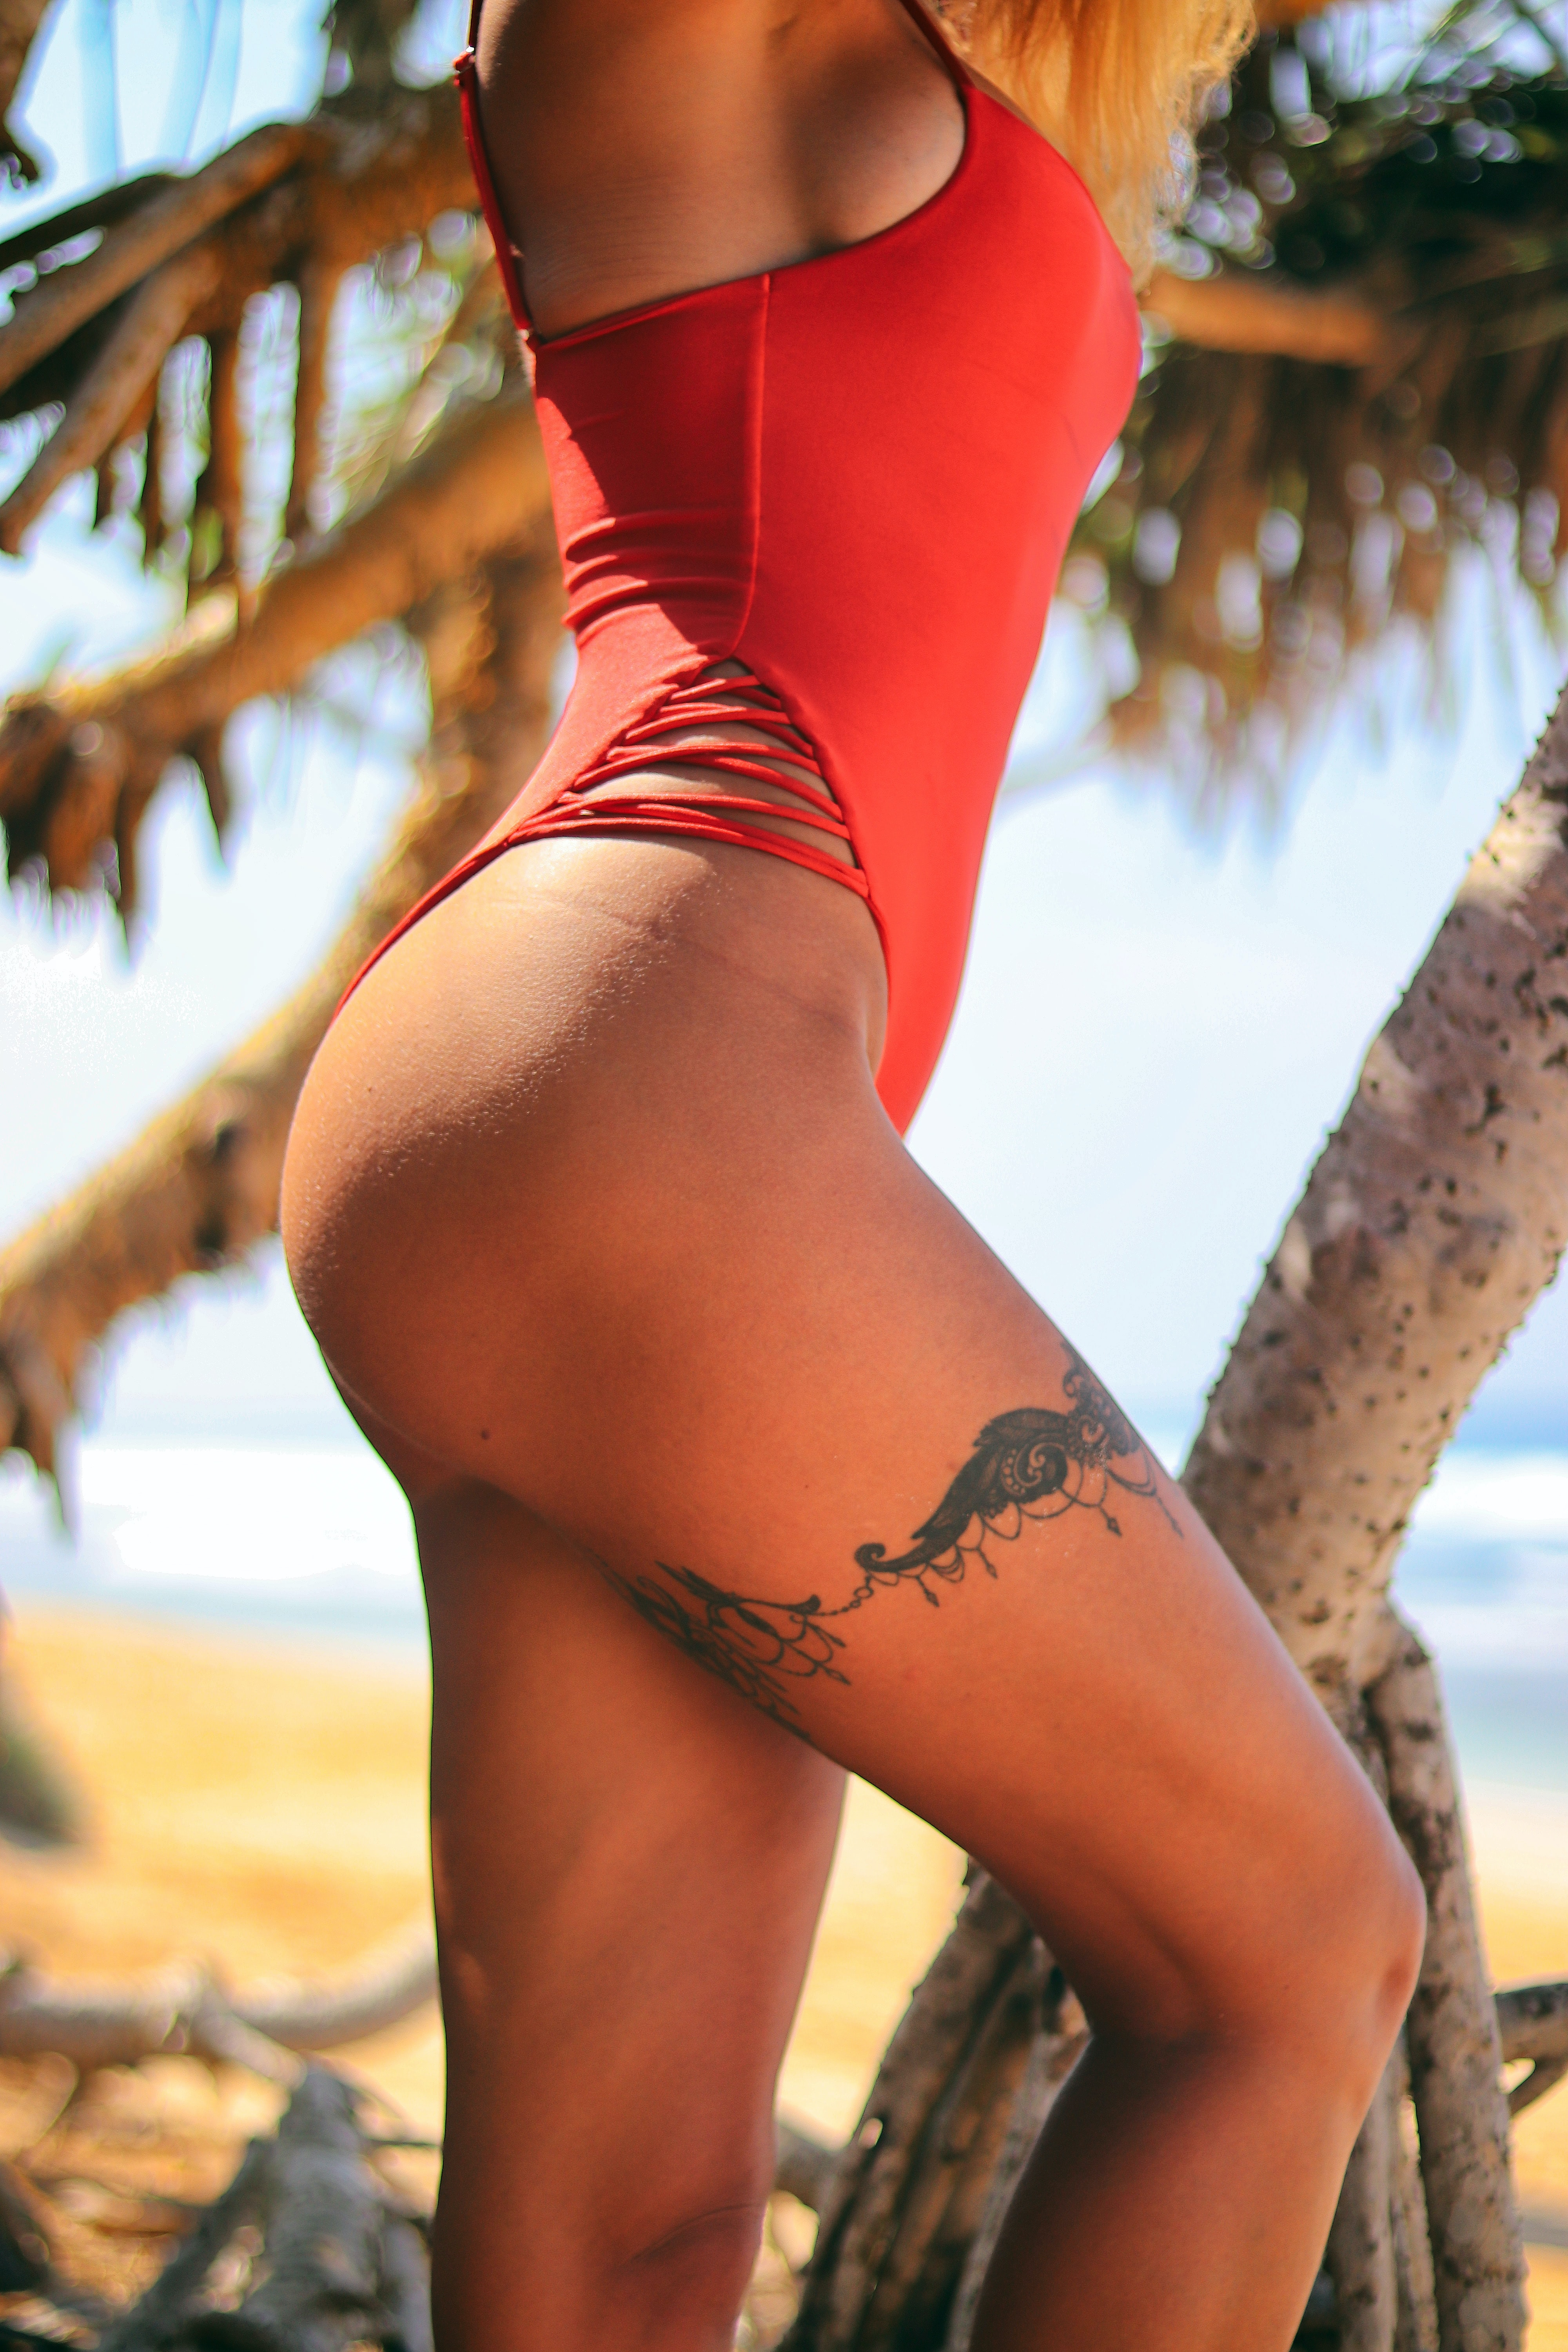 woman wearing red bikini with floral thigh tattoo